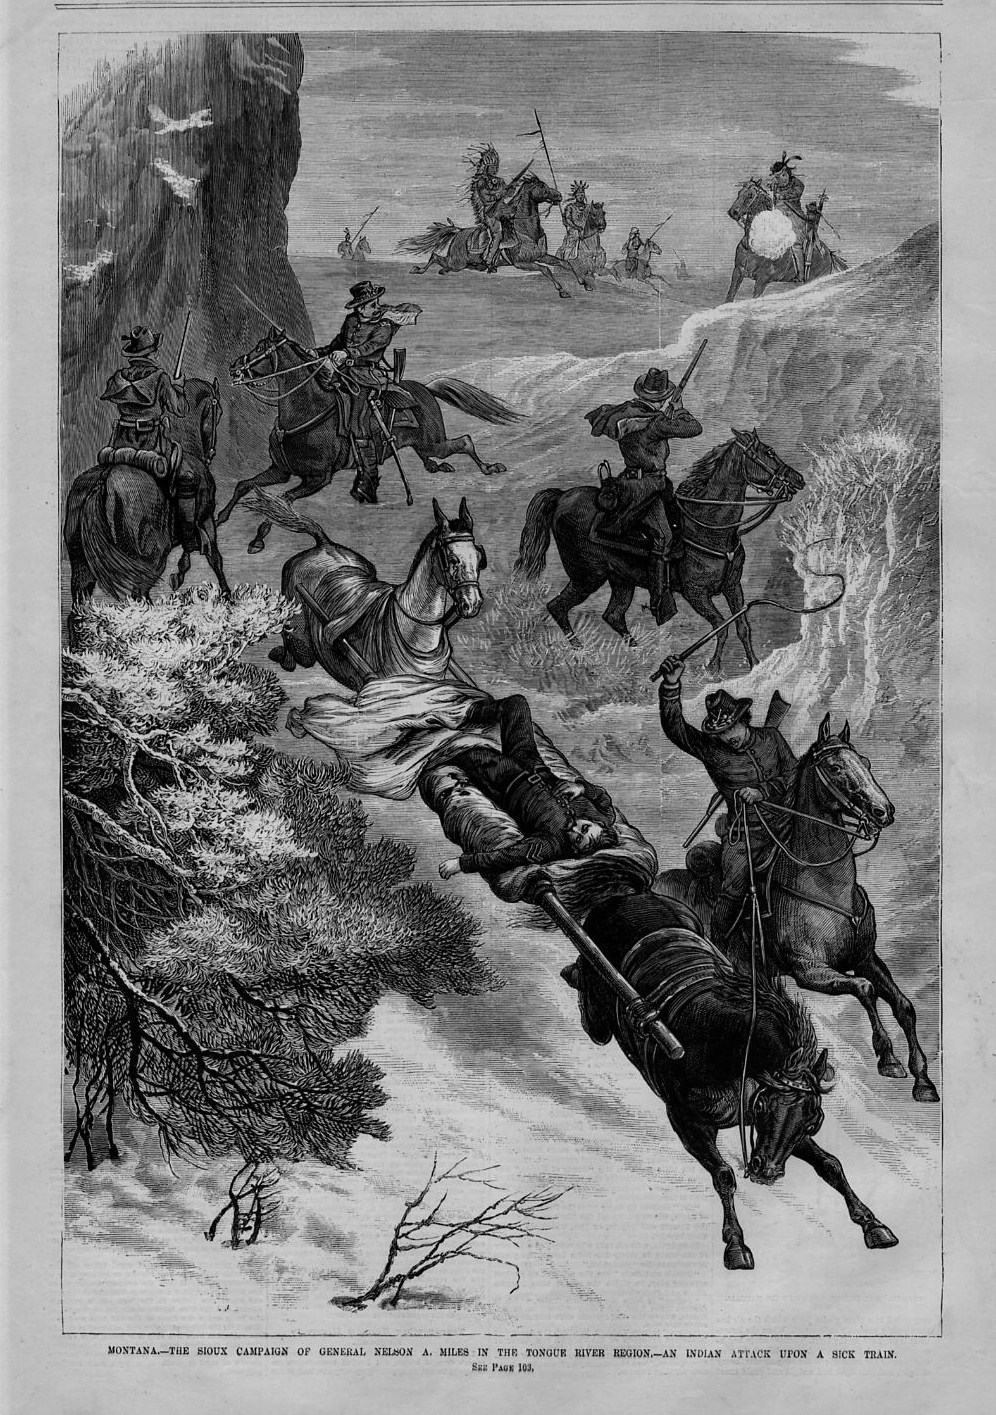 Details about MONTANA SIOUX INDIAN CAMPAIGN GENERAL MILES INDIANS ATTACK  SICK TRAIN WOUNDED